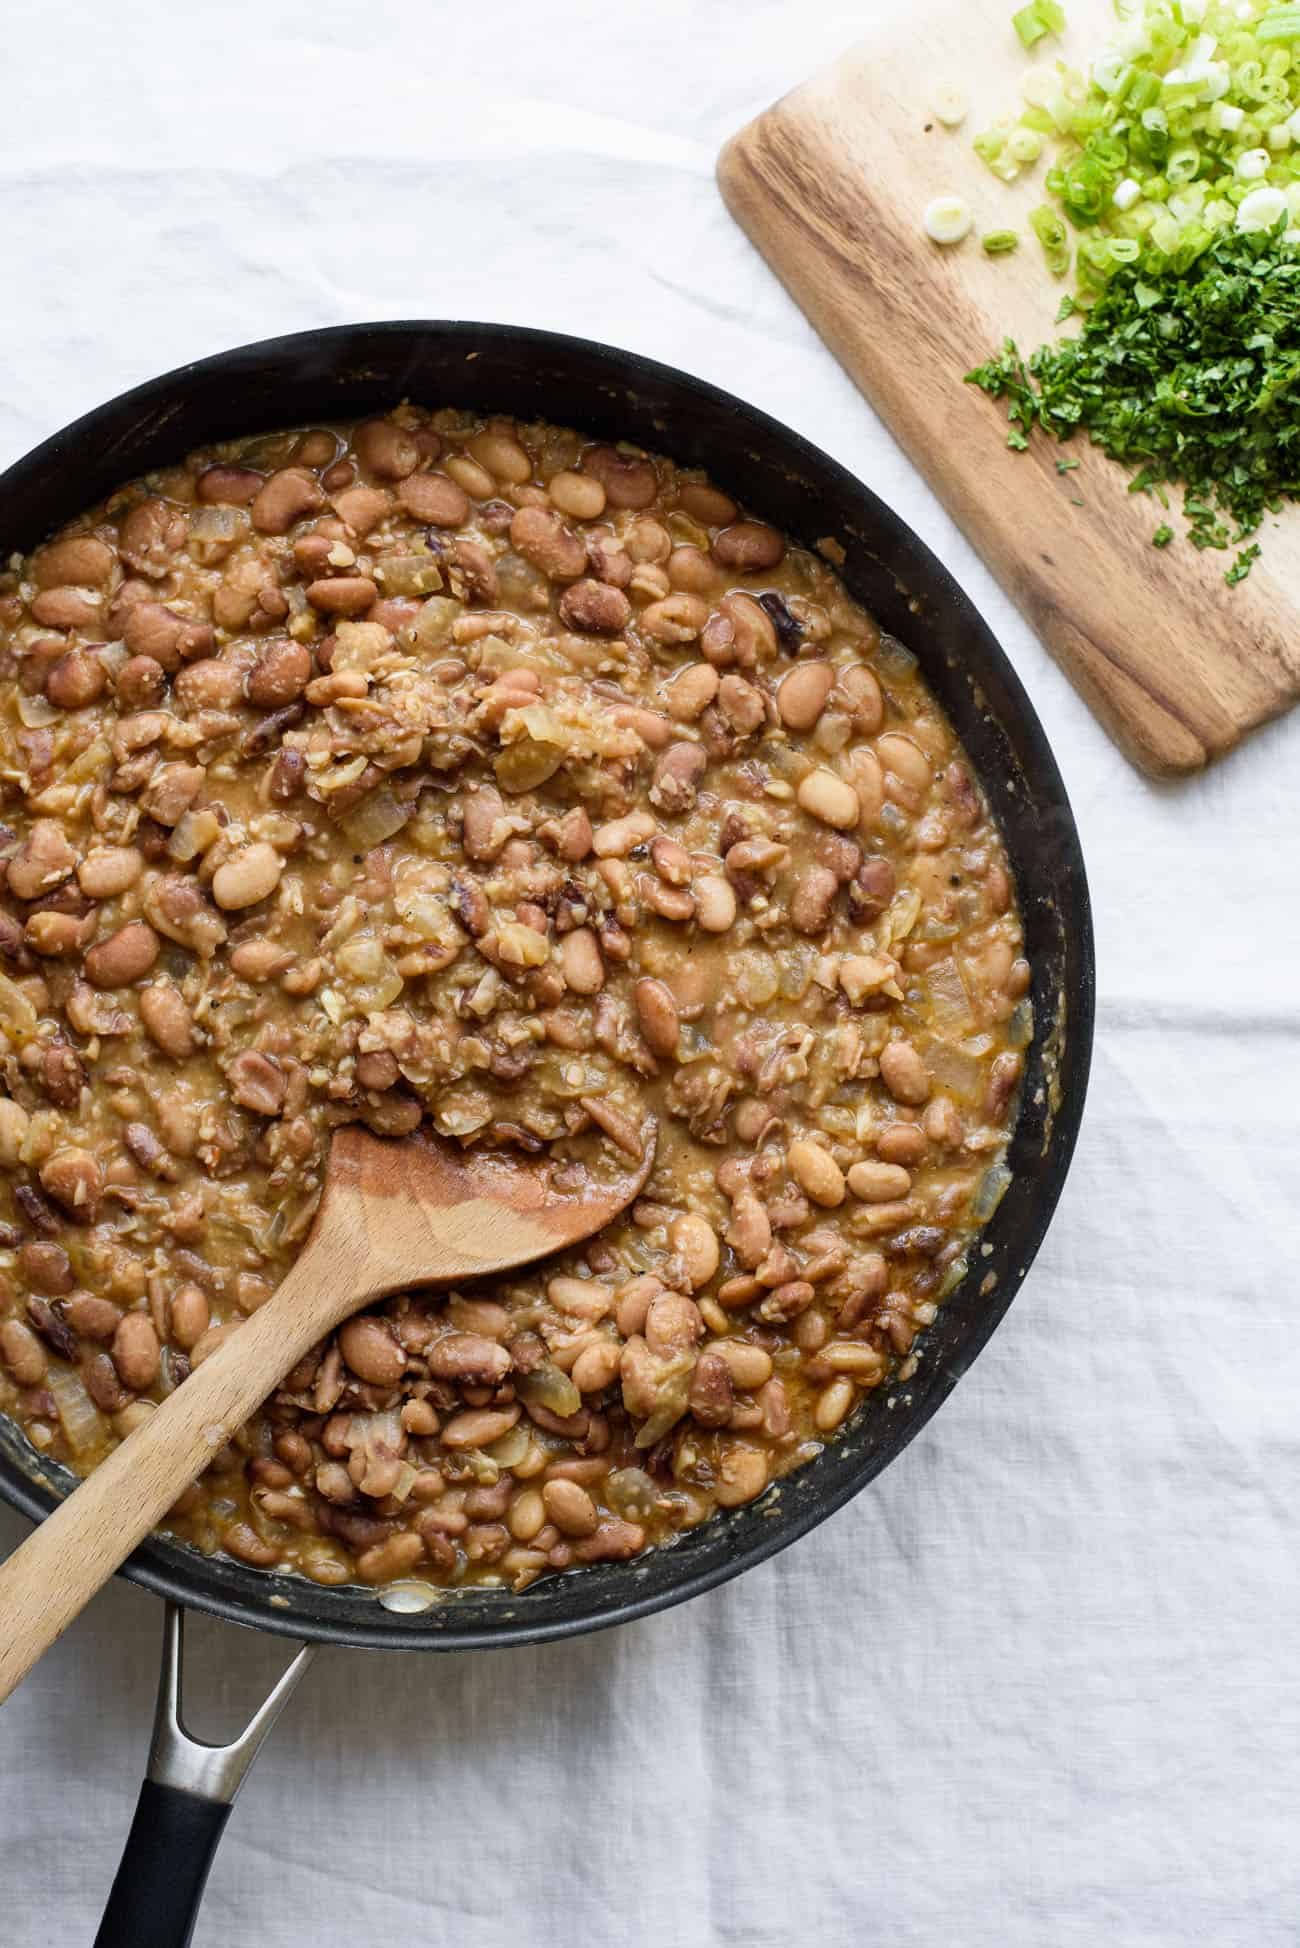 Brothy beans in a skillet